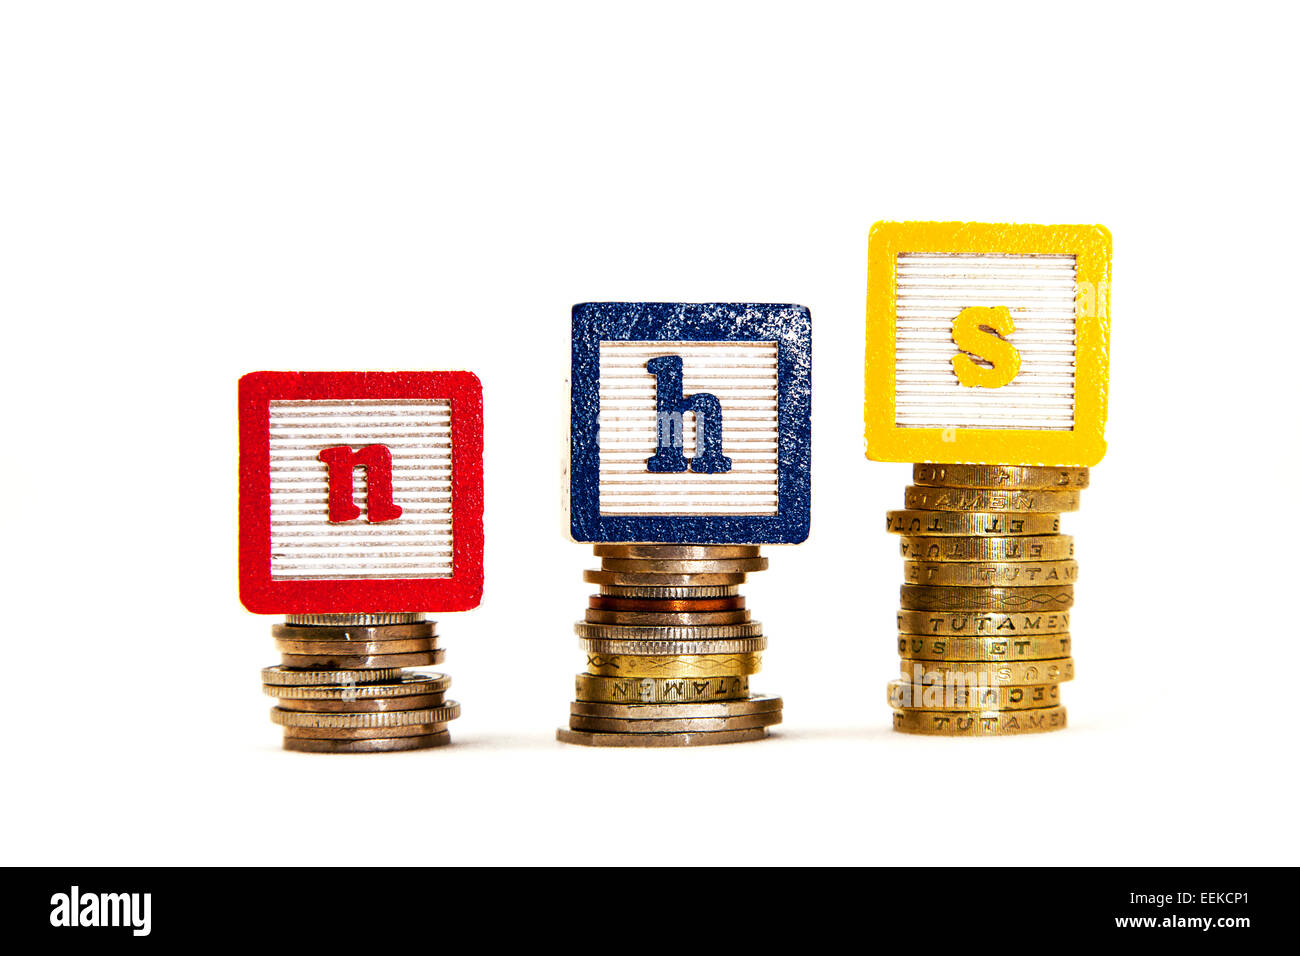 NHS rising cost costs money woes funding funds revenue income critical situation cut out copy space white background - Stock Image